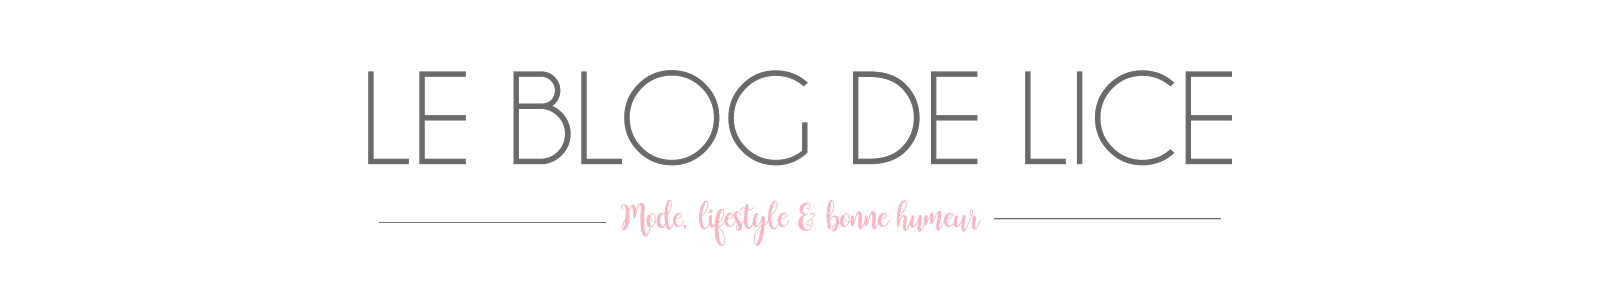 Le blog de Lice - Blog paris mode, beauté & lifestyle